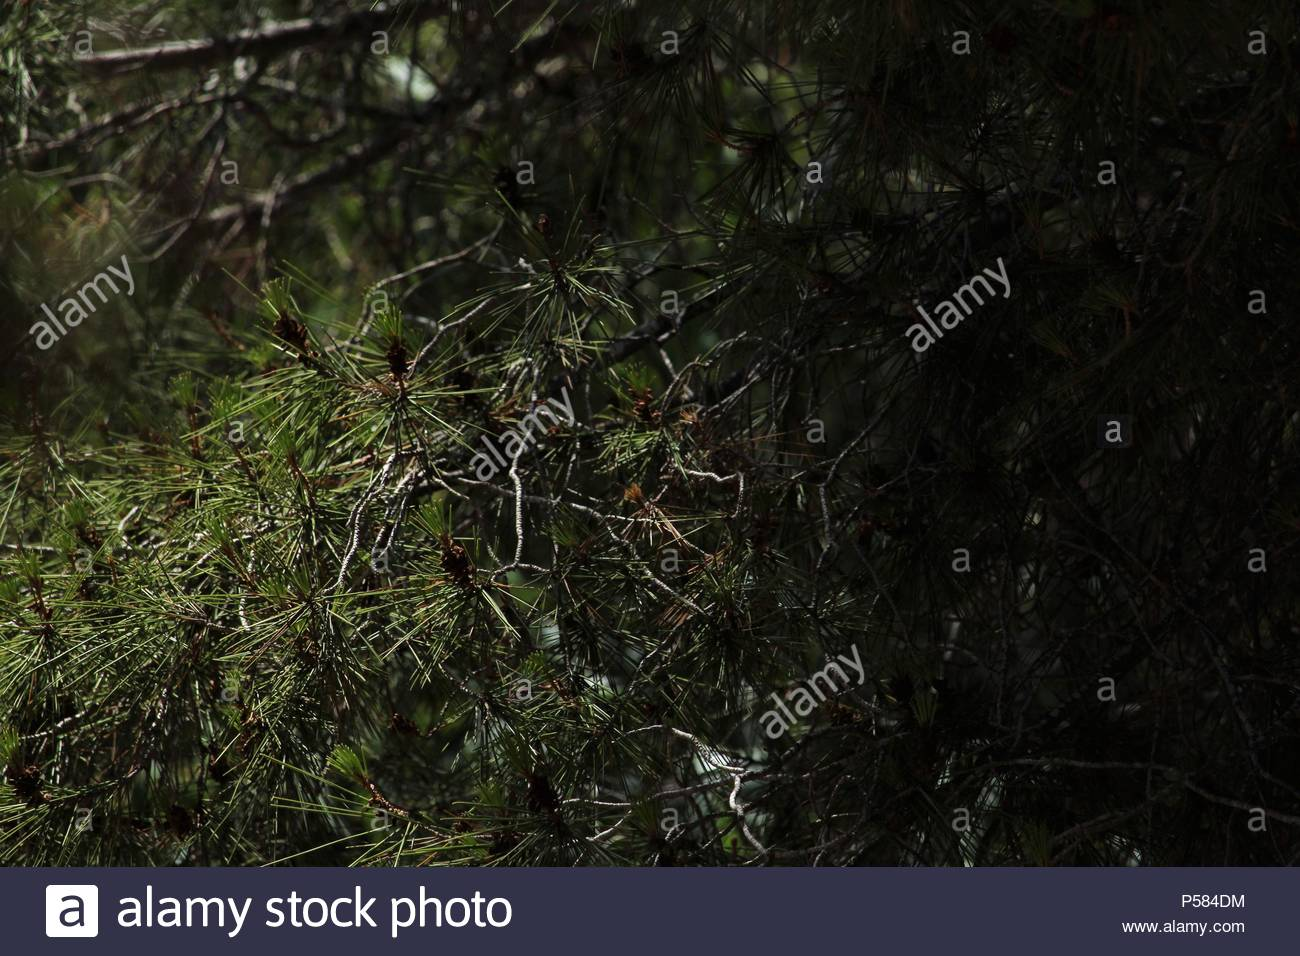 Wild landscapes - upward angular shot beneath an Aleppo pine tree (Pinus halepensis) at La Mata National Park & Nature Reserve, Spain. Summer 2018. - Stock Image